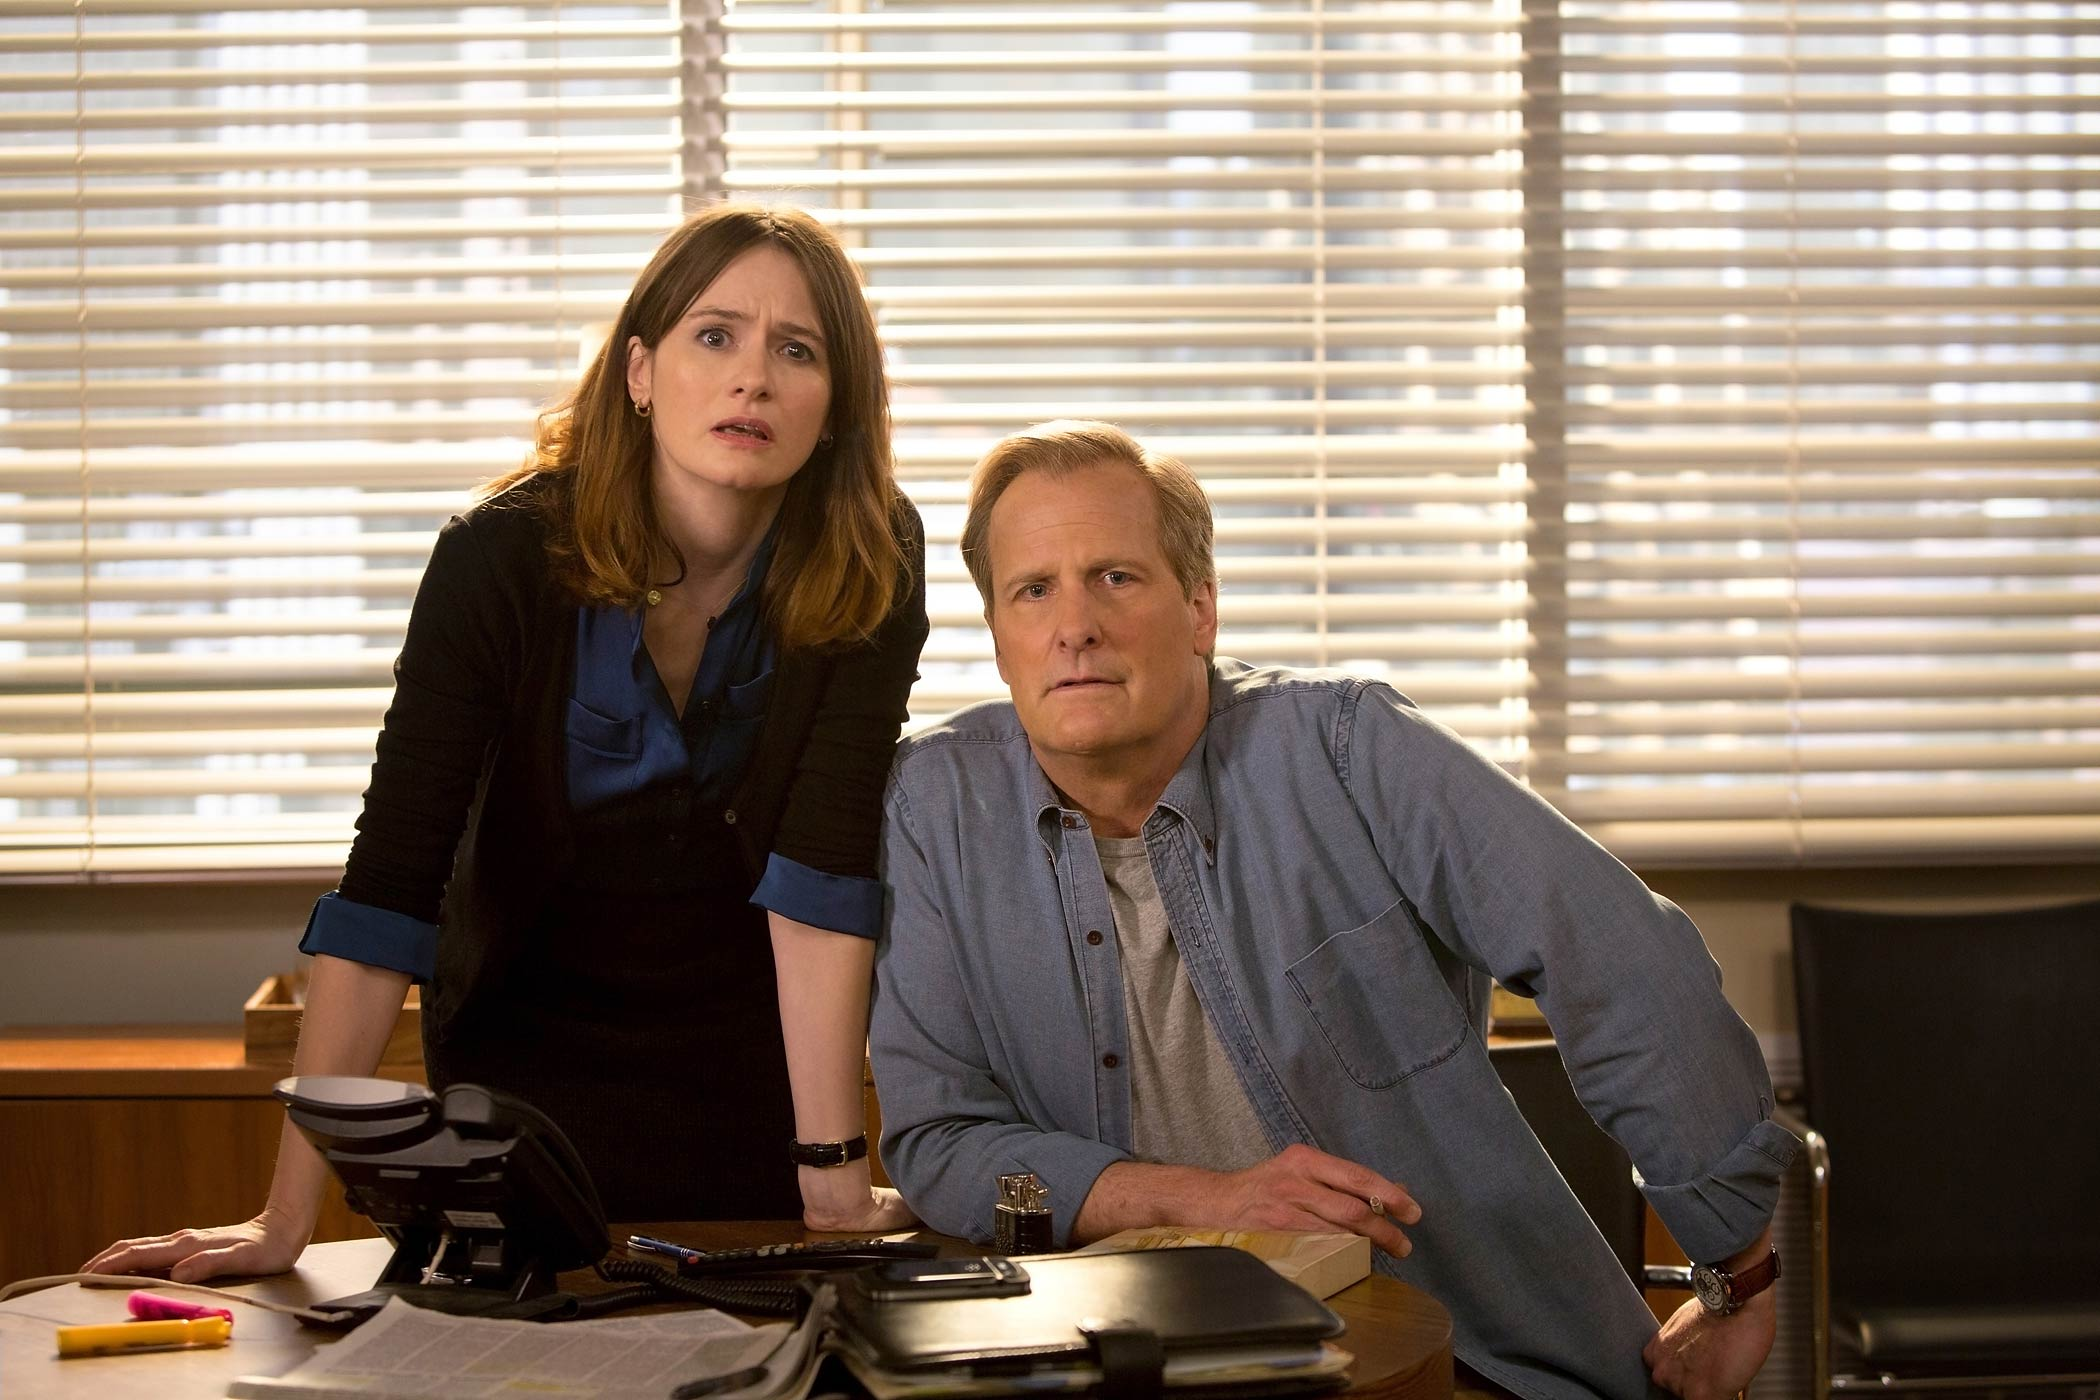 From left: Emily Mortimer as MacKenzie McHale and Jeff Daniels as Will McAvoy in The Newsroom